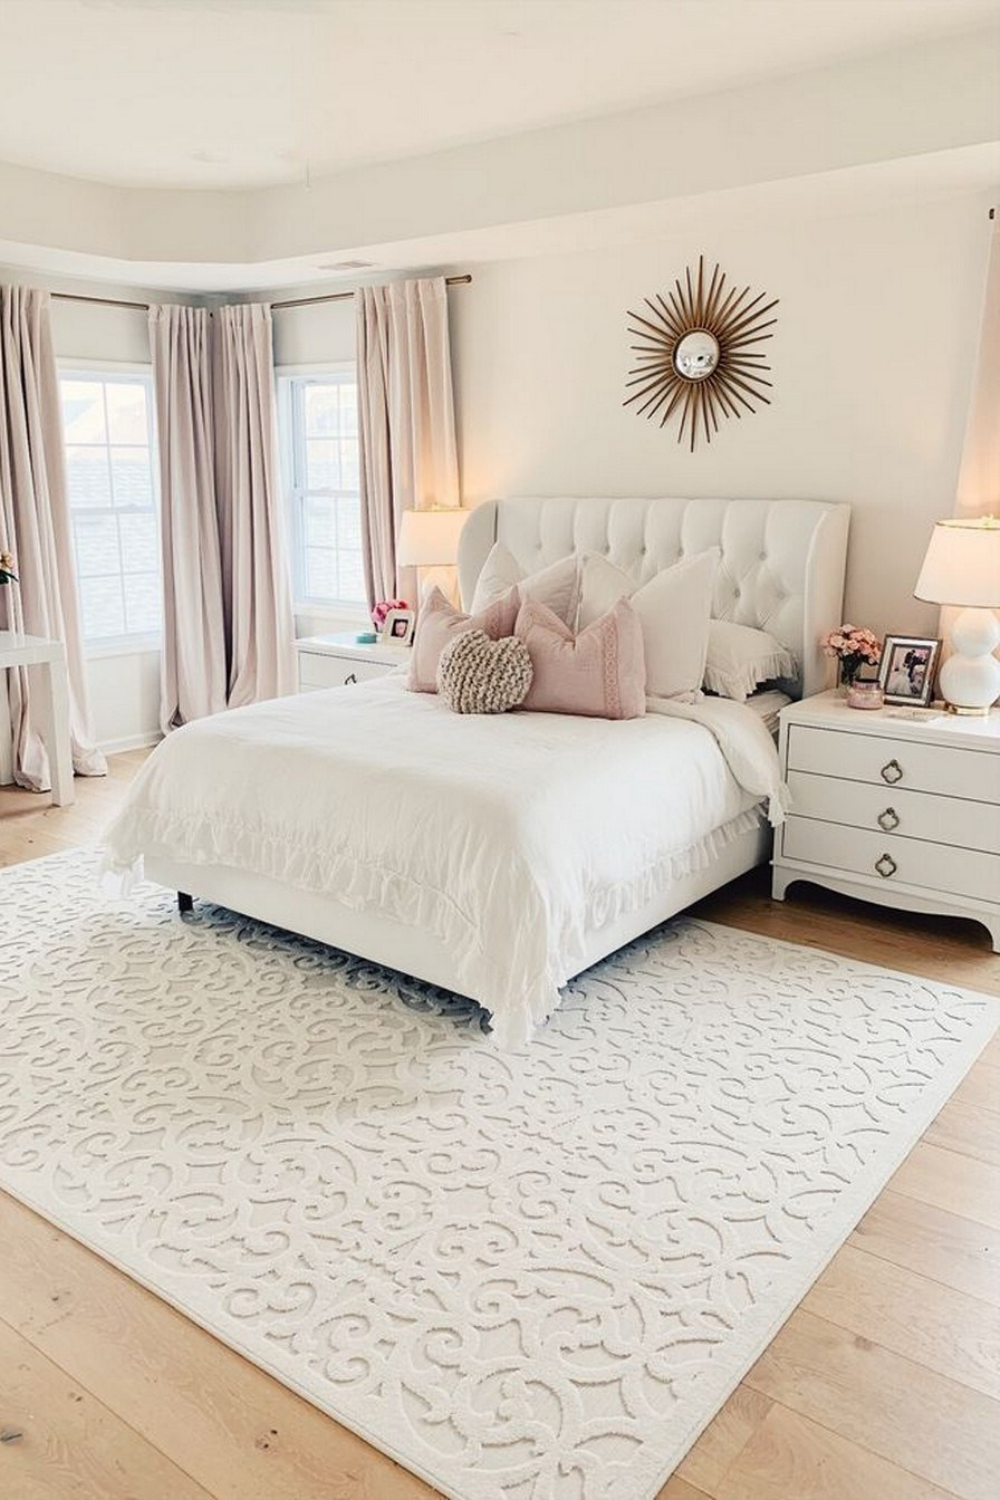 10 Gorgeous Bedroom Decor Ideas 002 Just Looking Picture Is Not Enough Visit My Website To See M Master Bedroom Makeover Bedroom Decor Warm Home Decor